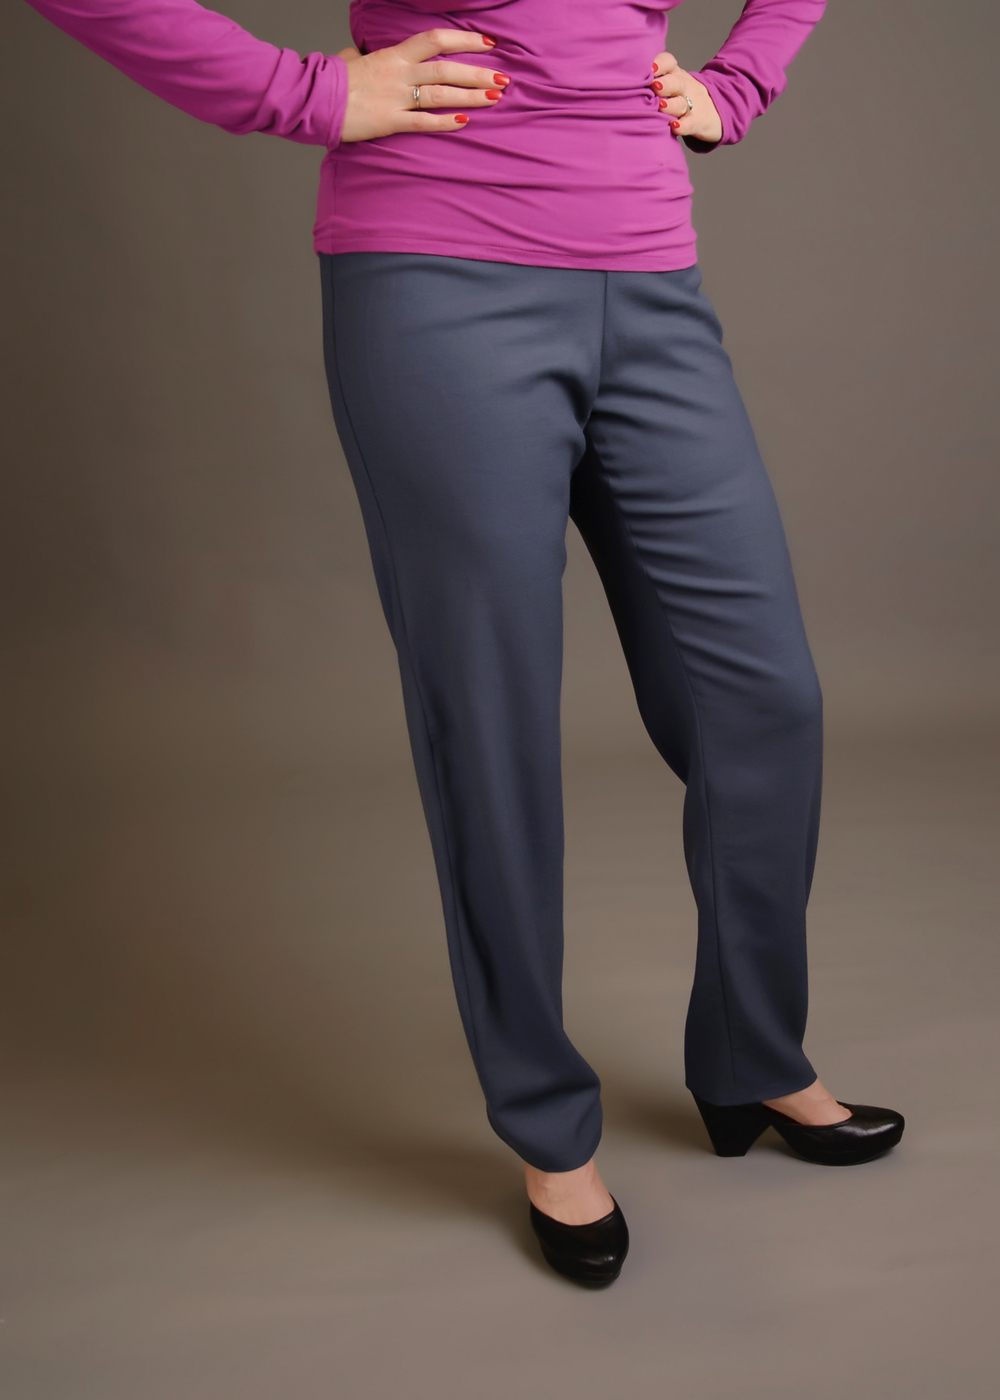 Palmer/Pletsch pants. Wool crepe from A Fashionable Stitch fabric store in Salt Lake City. Photo by Andrea Jones.